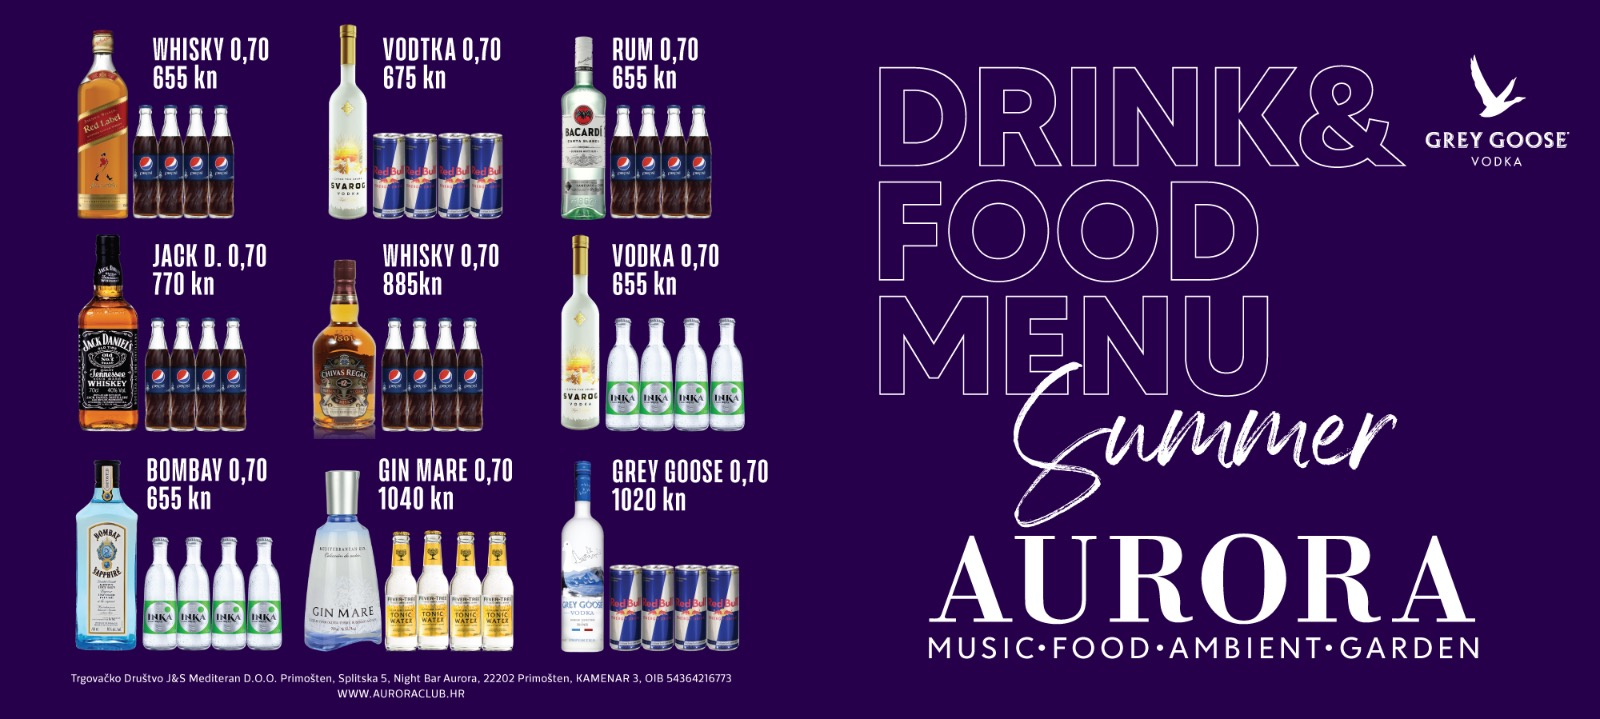 Drink & Food Menu